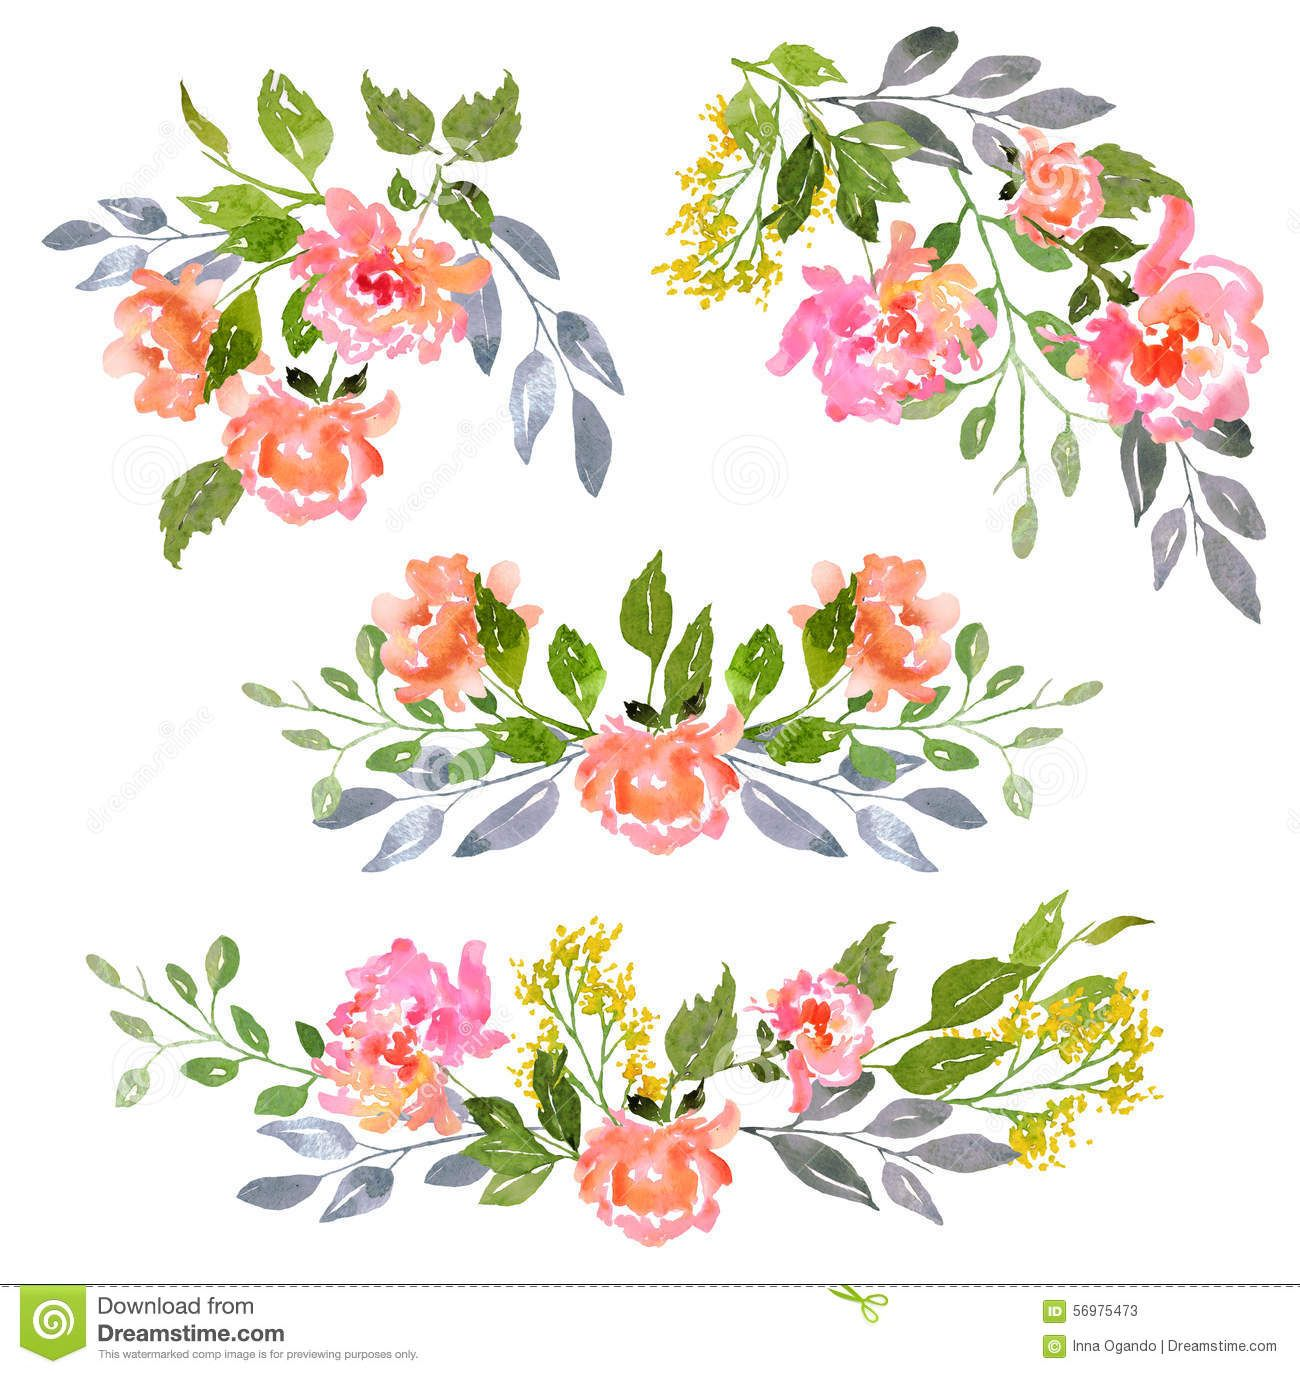 Clipart Flowers Wedding Invitation Clipart Flowers: Set Of Watercolor Floral Composition